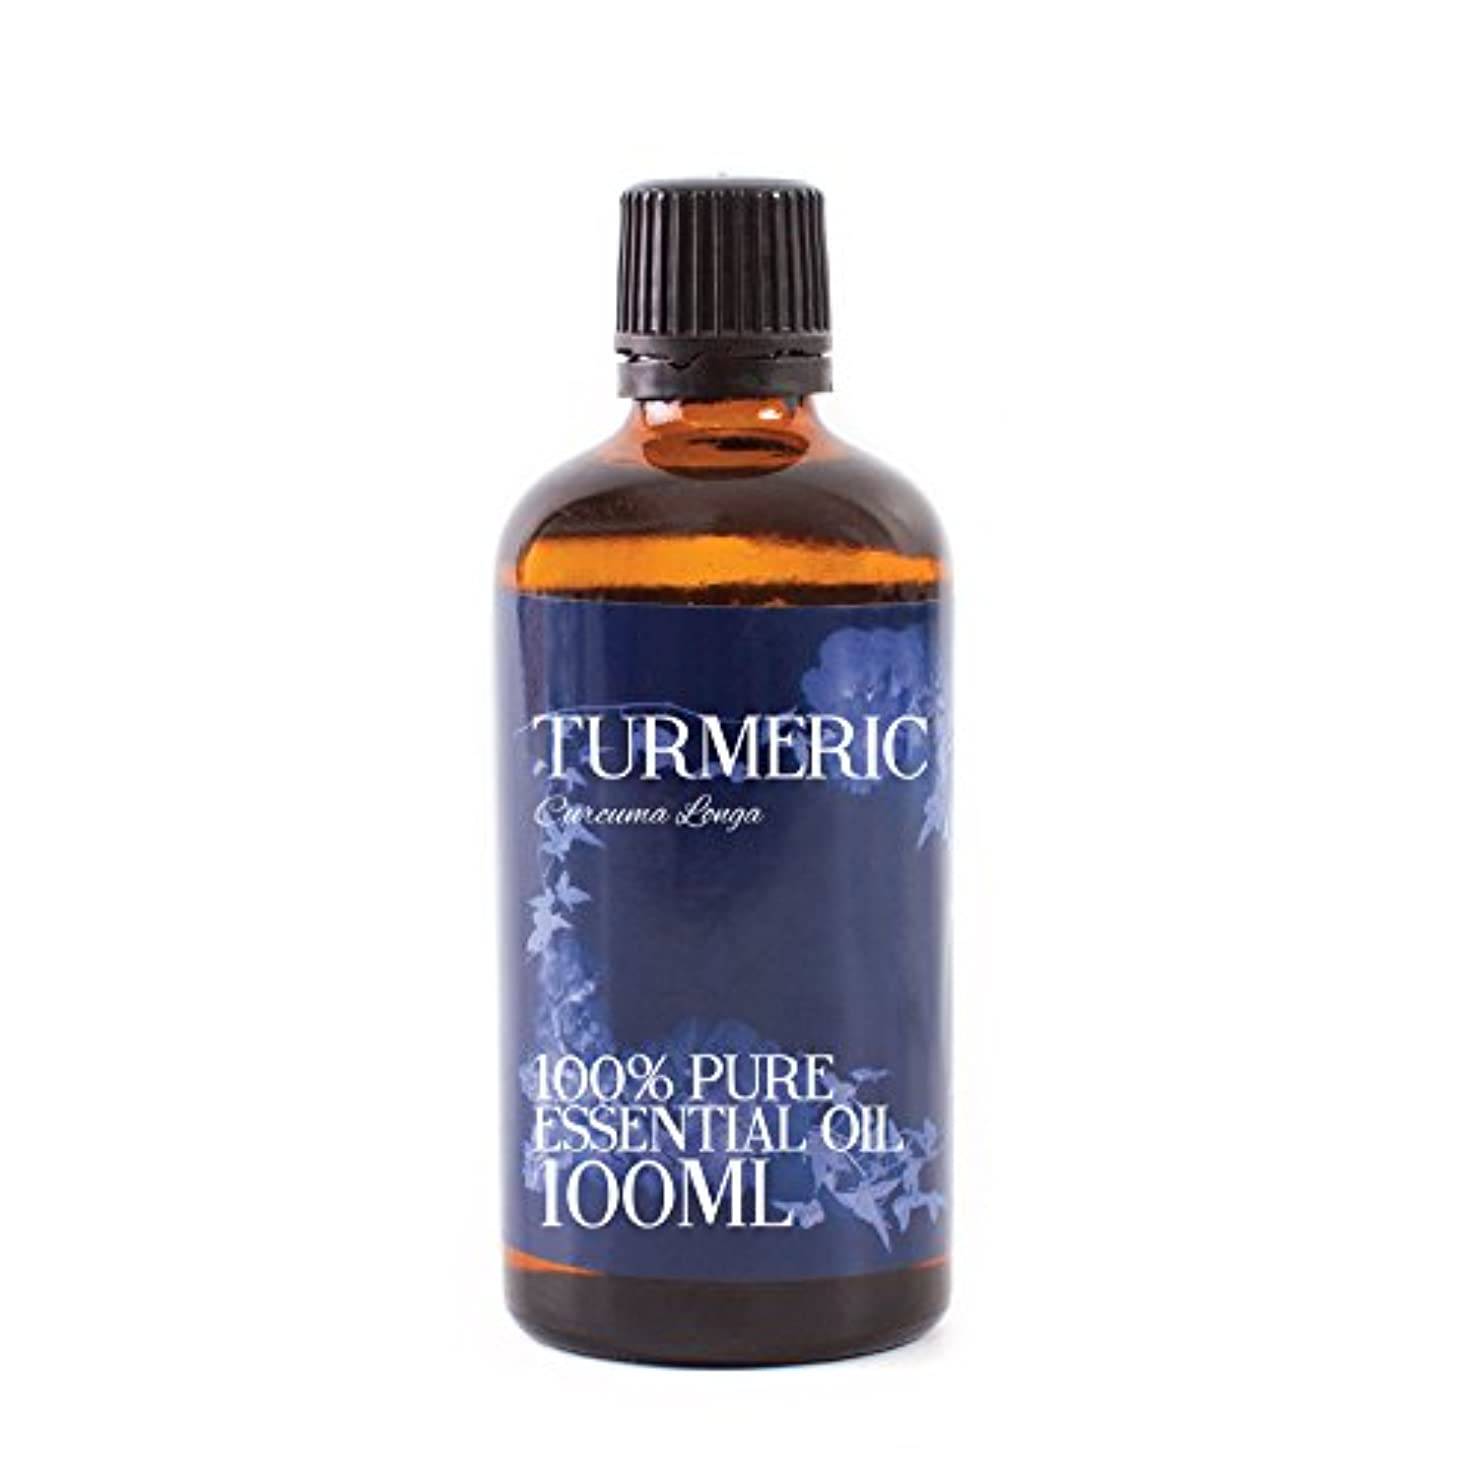 アウター過剰雪だるまMystic Moments | Turmeric Essential Oil - 100ml - 100% Pure